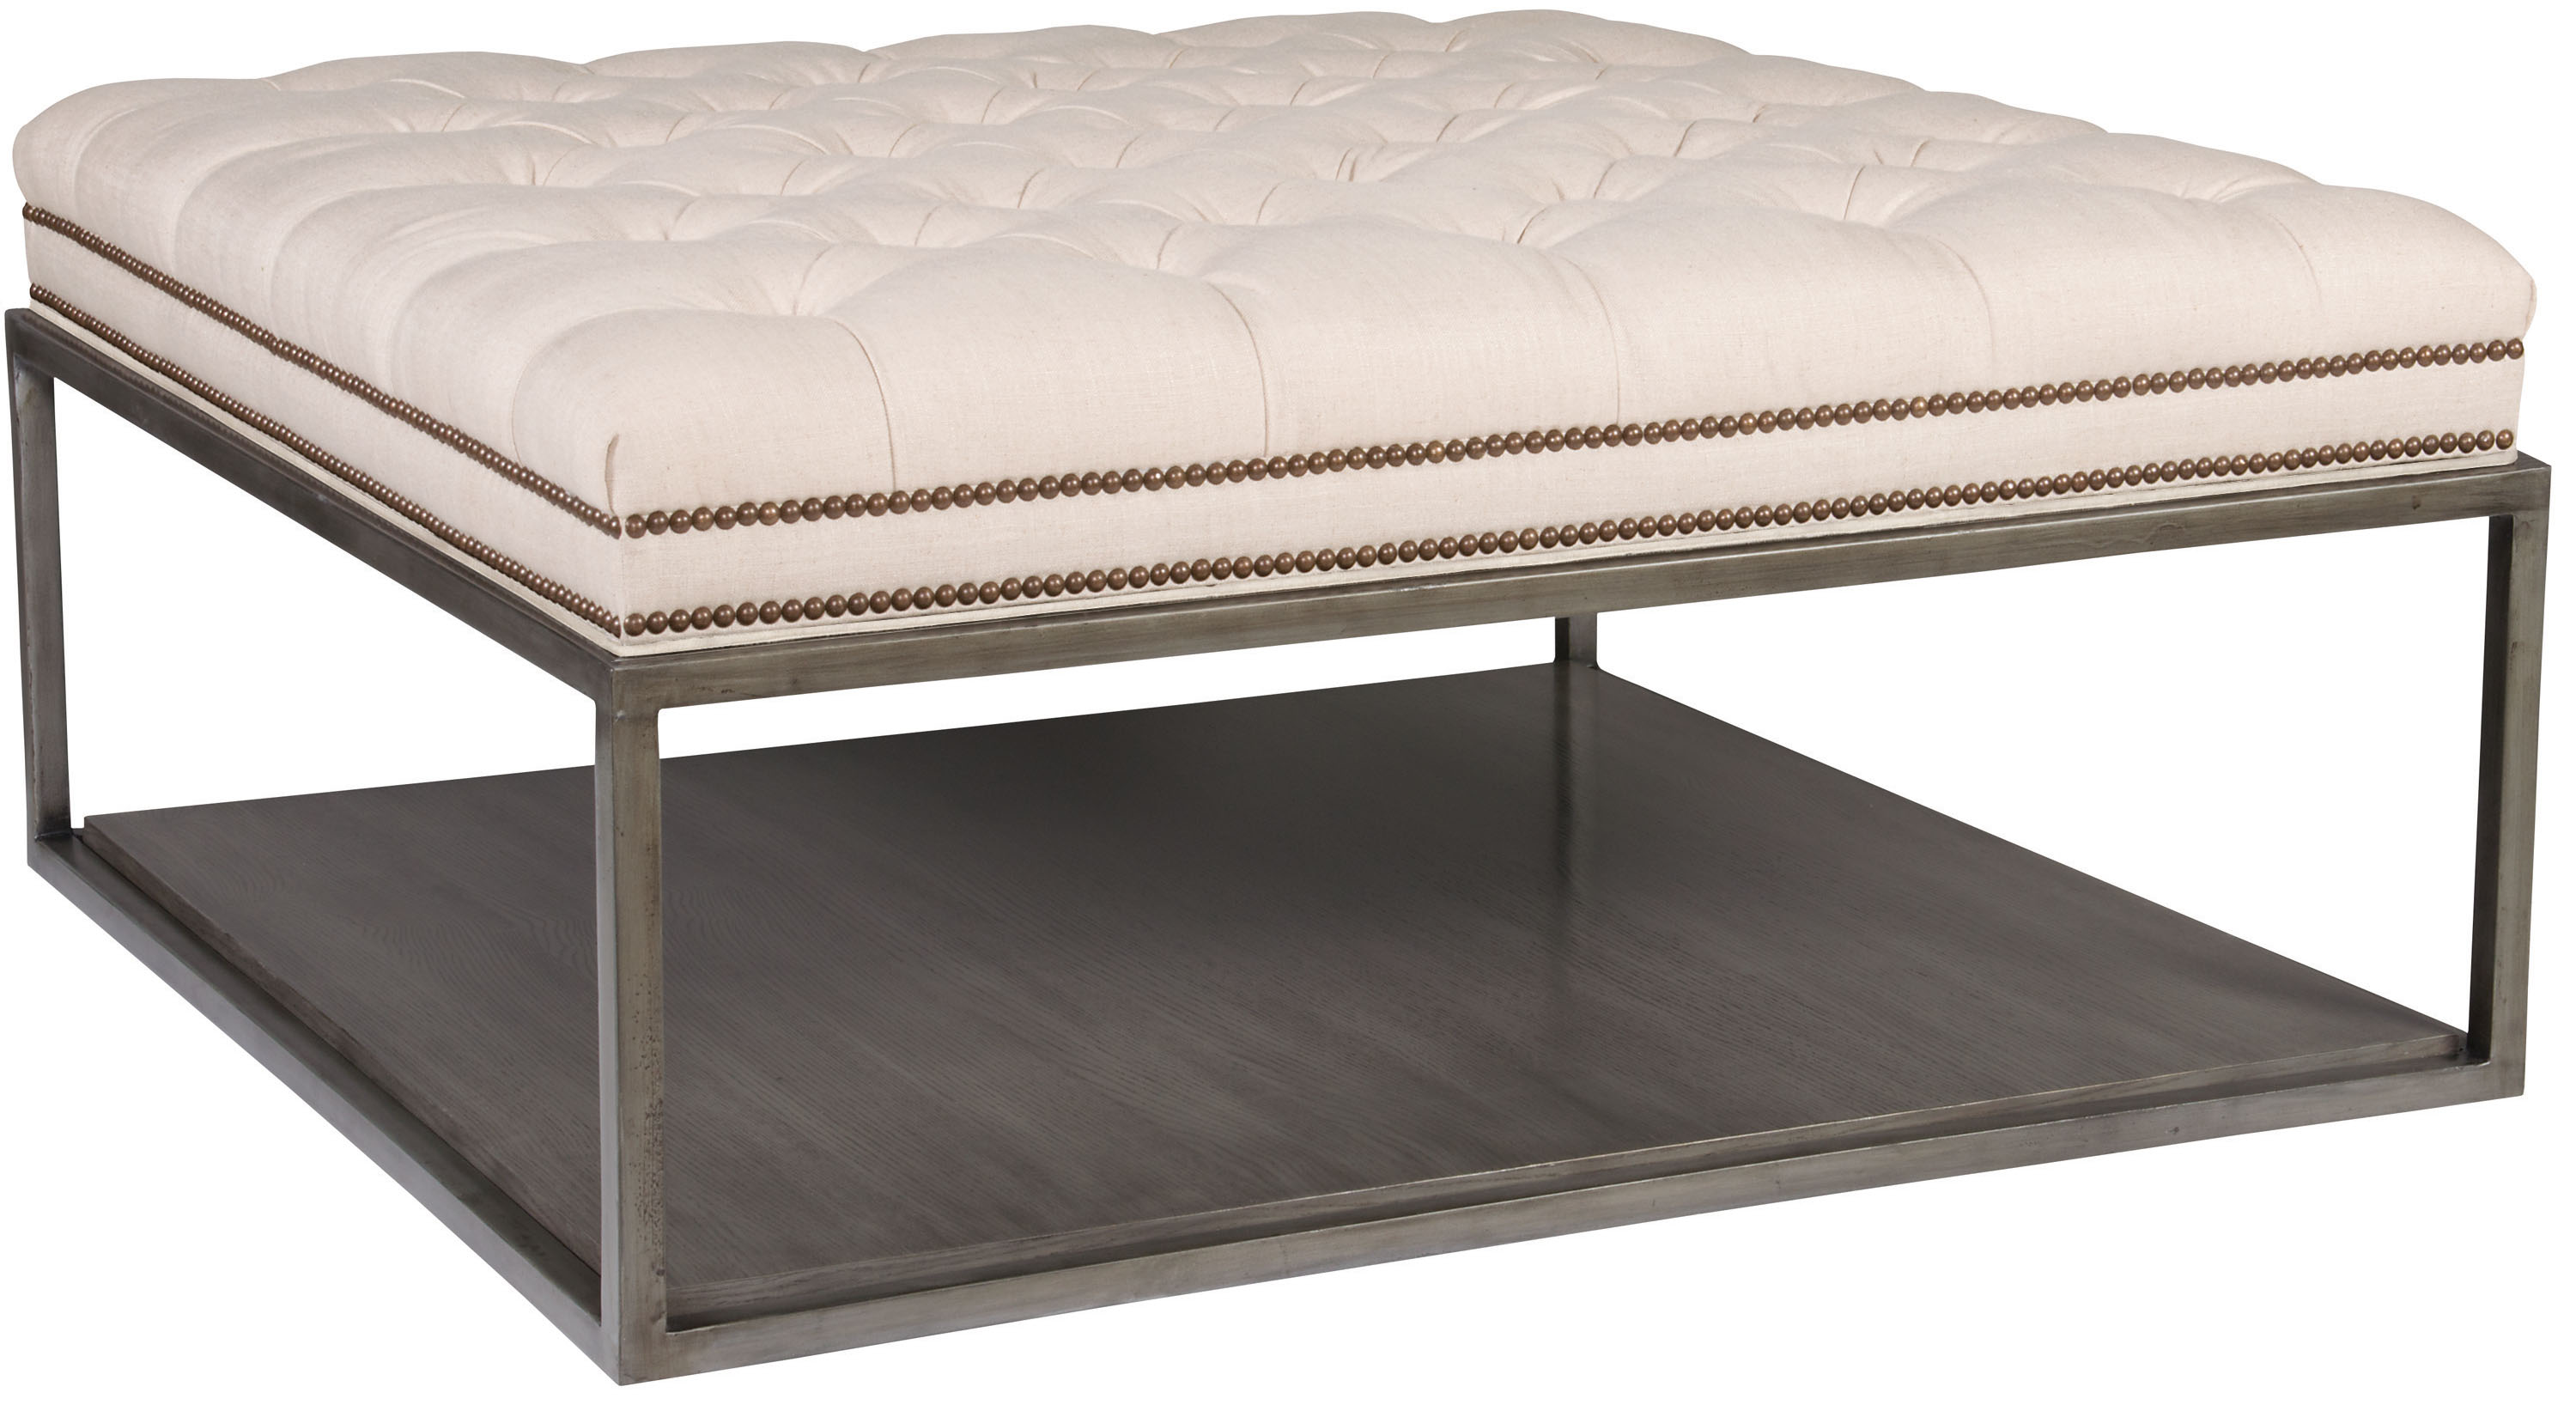 Vanguard Furniture Our Products W44smkh Wayland Square